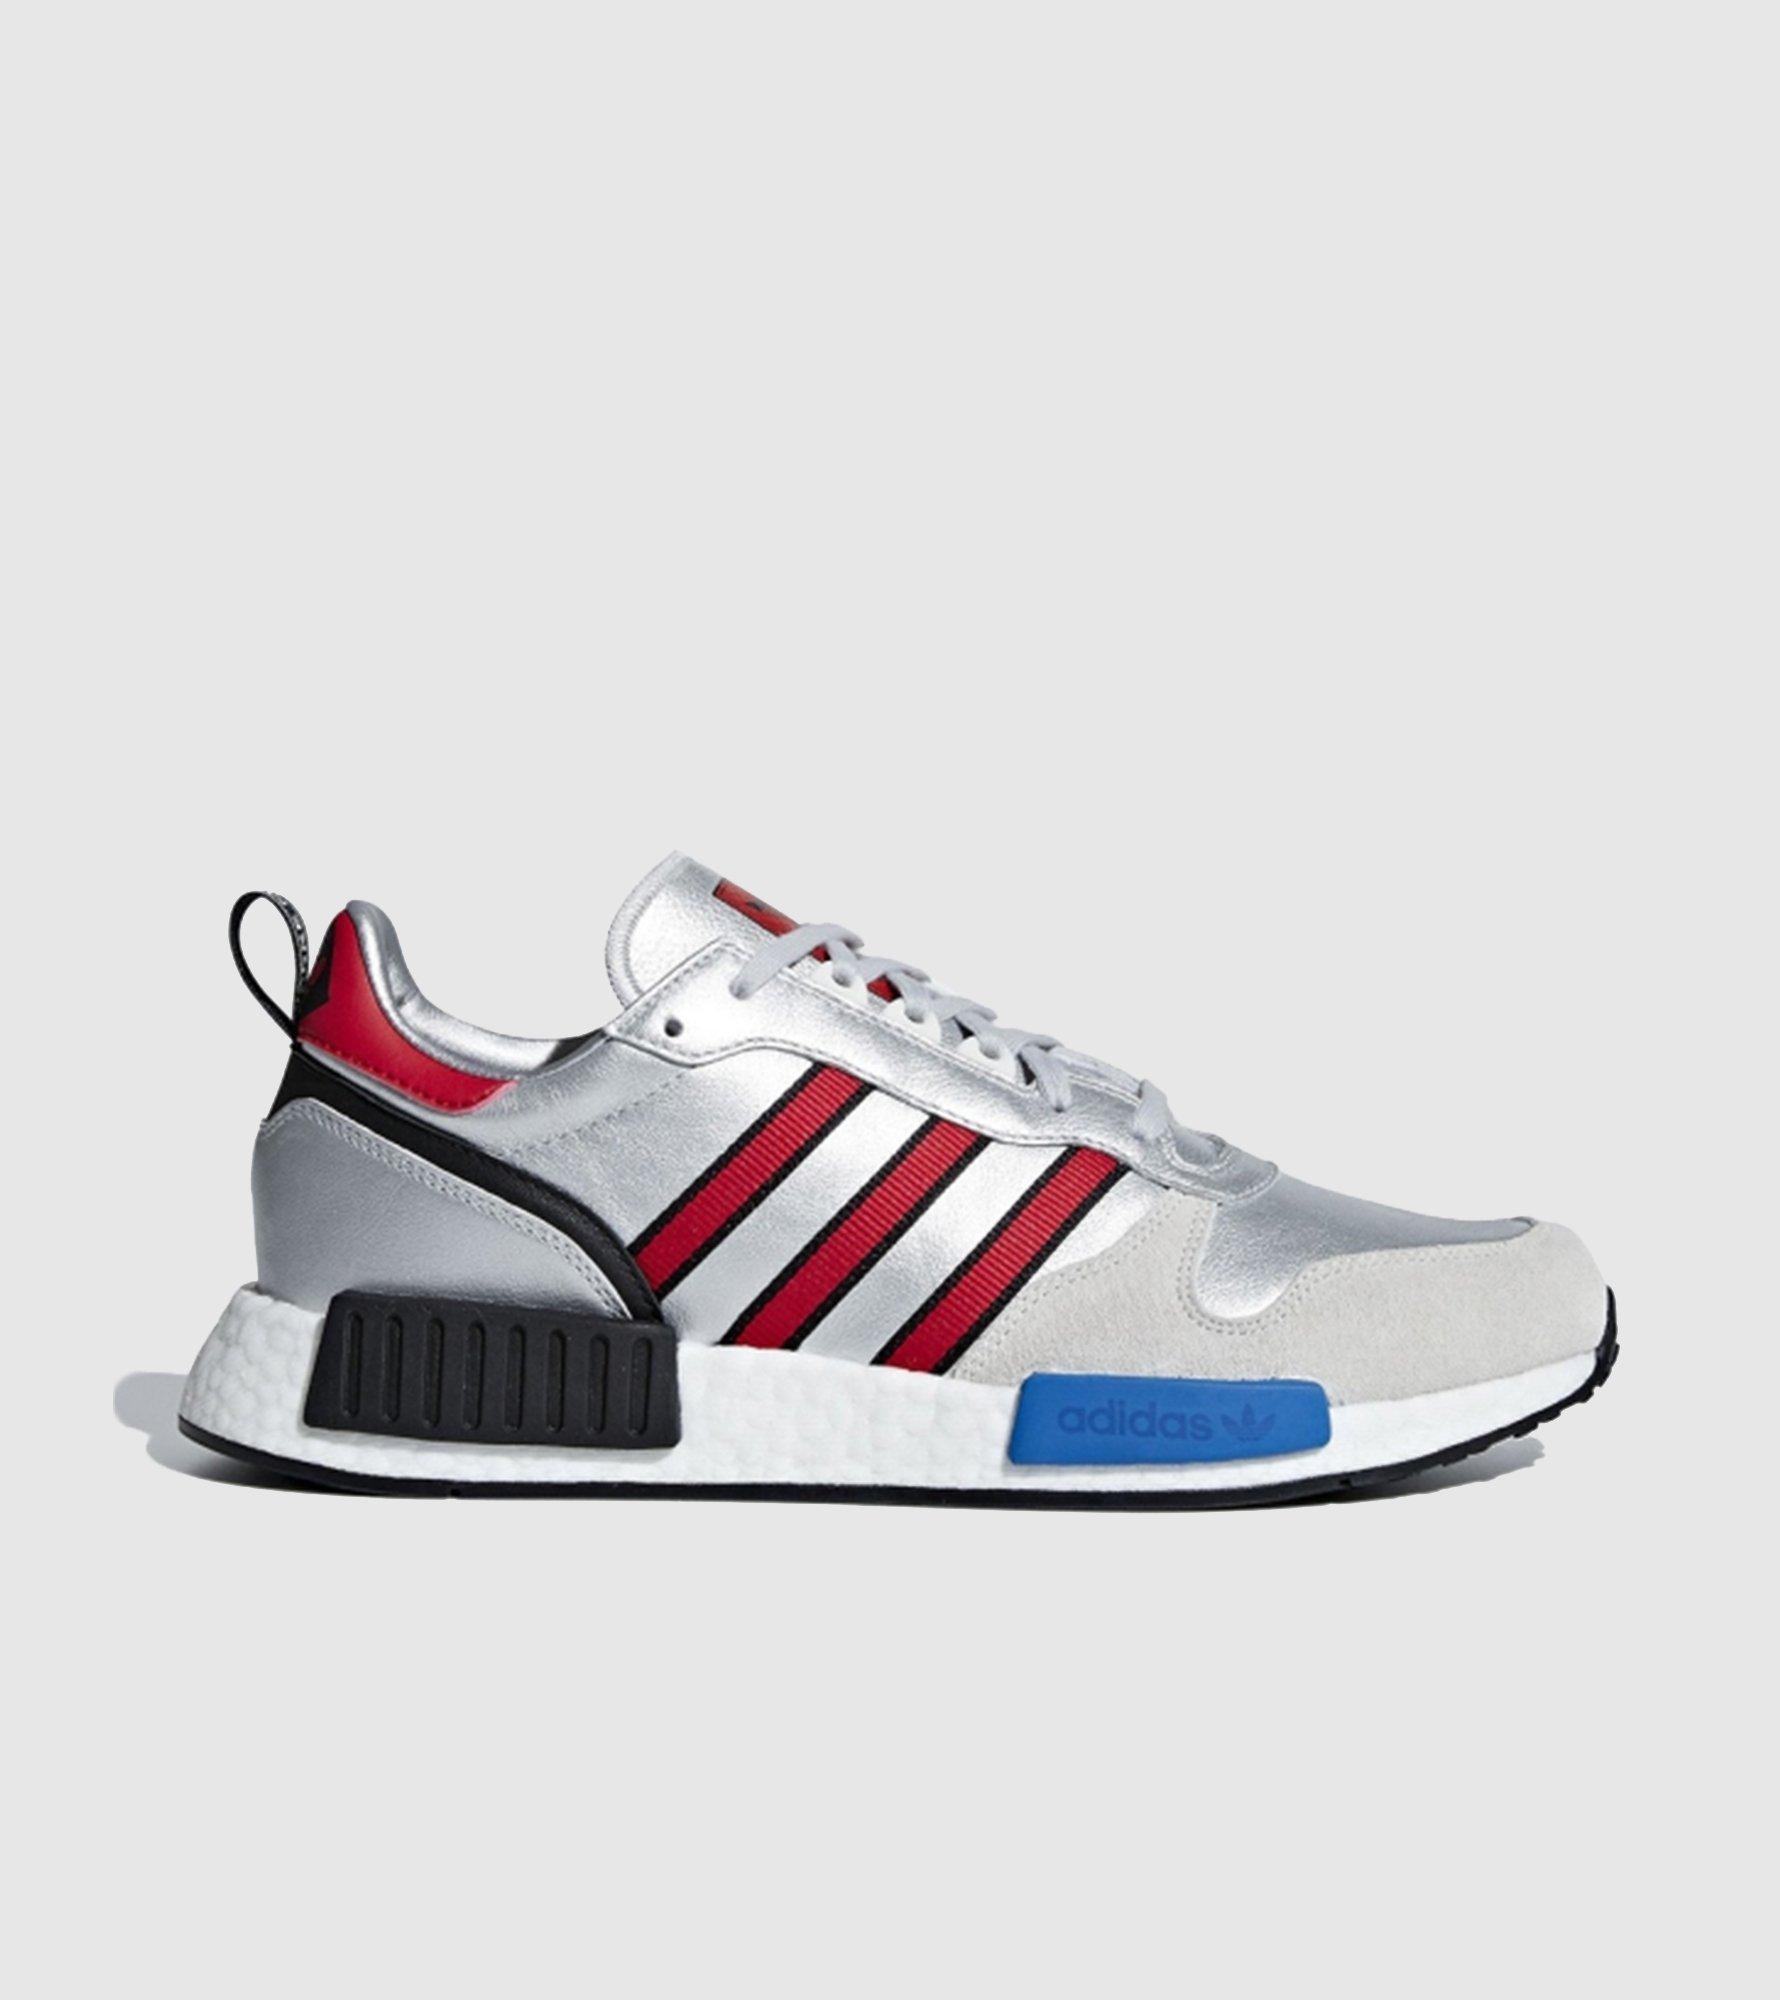 3e55935a029ba Lyst - Adidas Originals Rising Star X R1 in White for Men